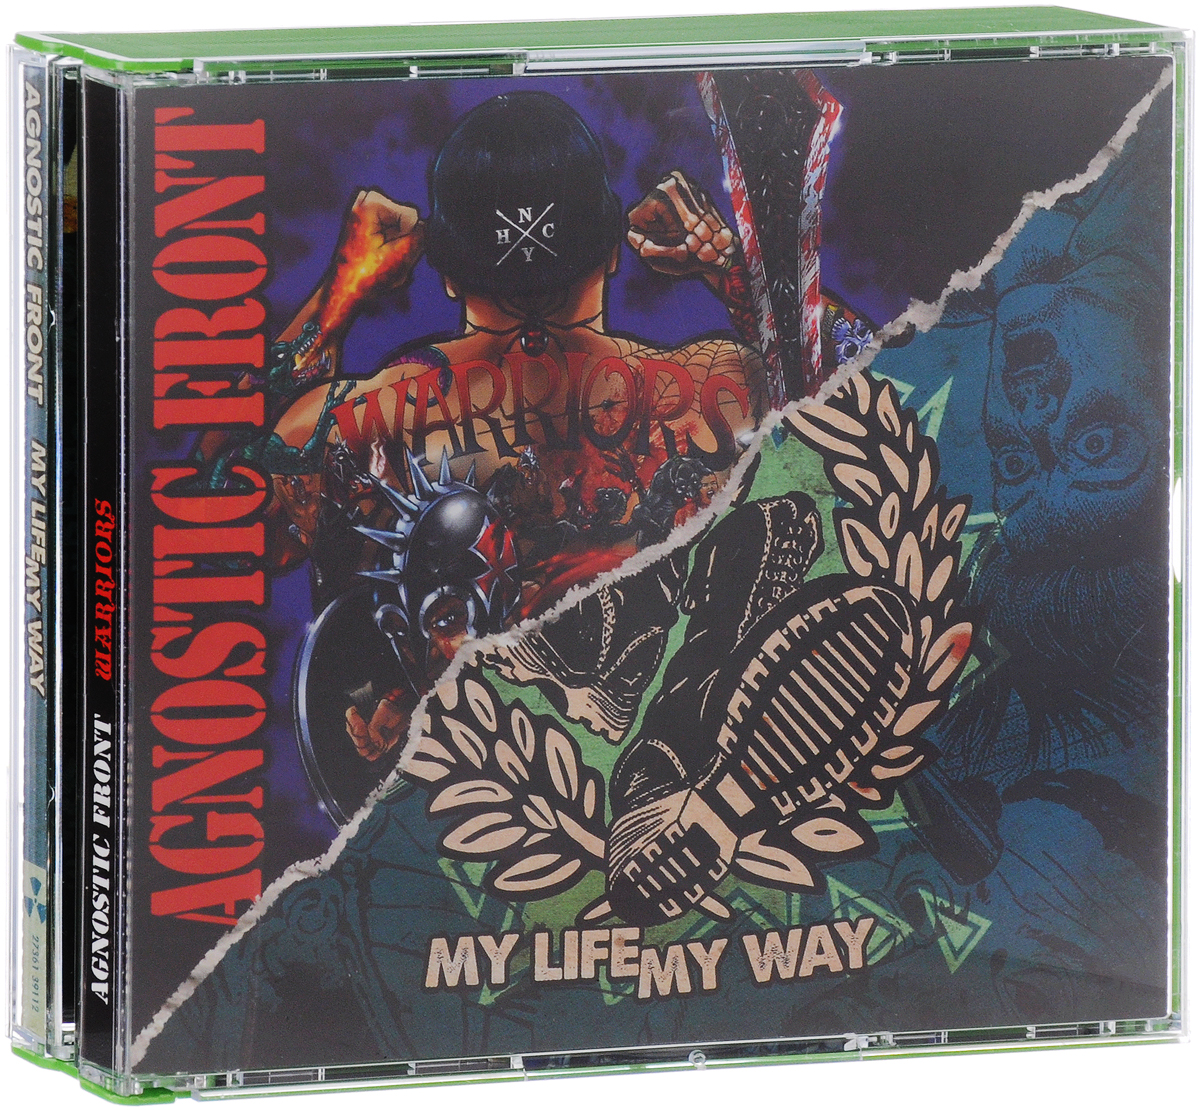 Agnostic Front. Warriors / My Life My Way (2 CD)